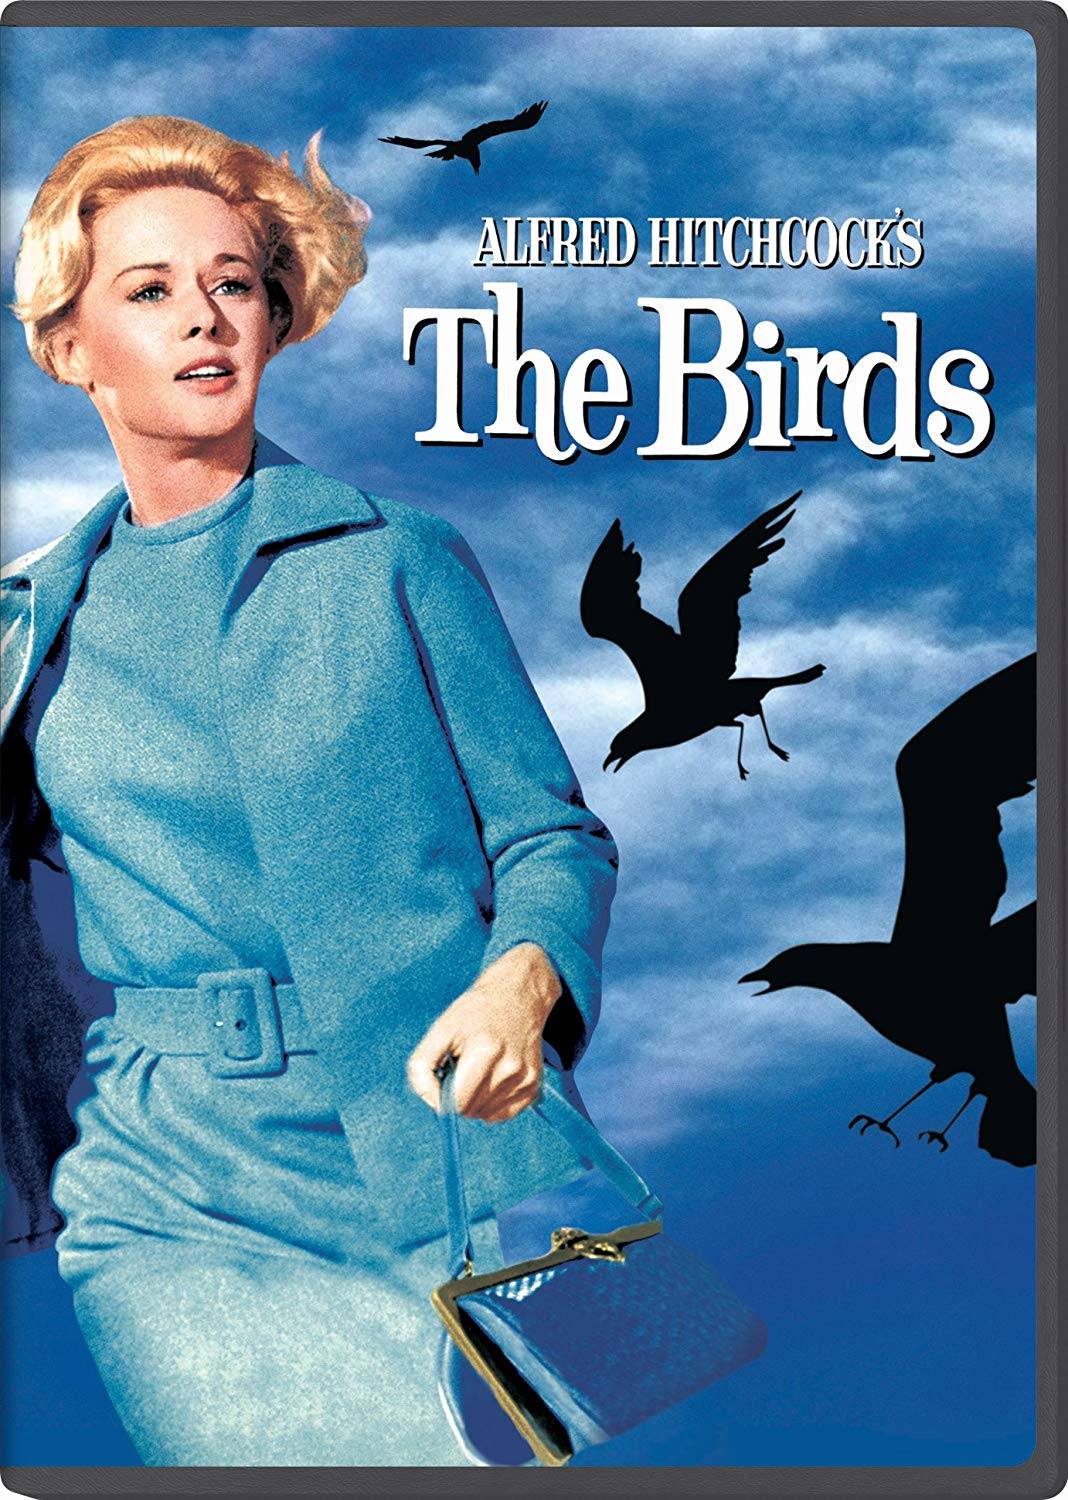 The Birds DVD Cover-copyrighted image